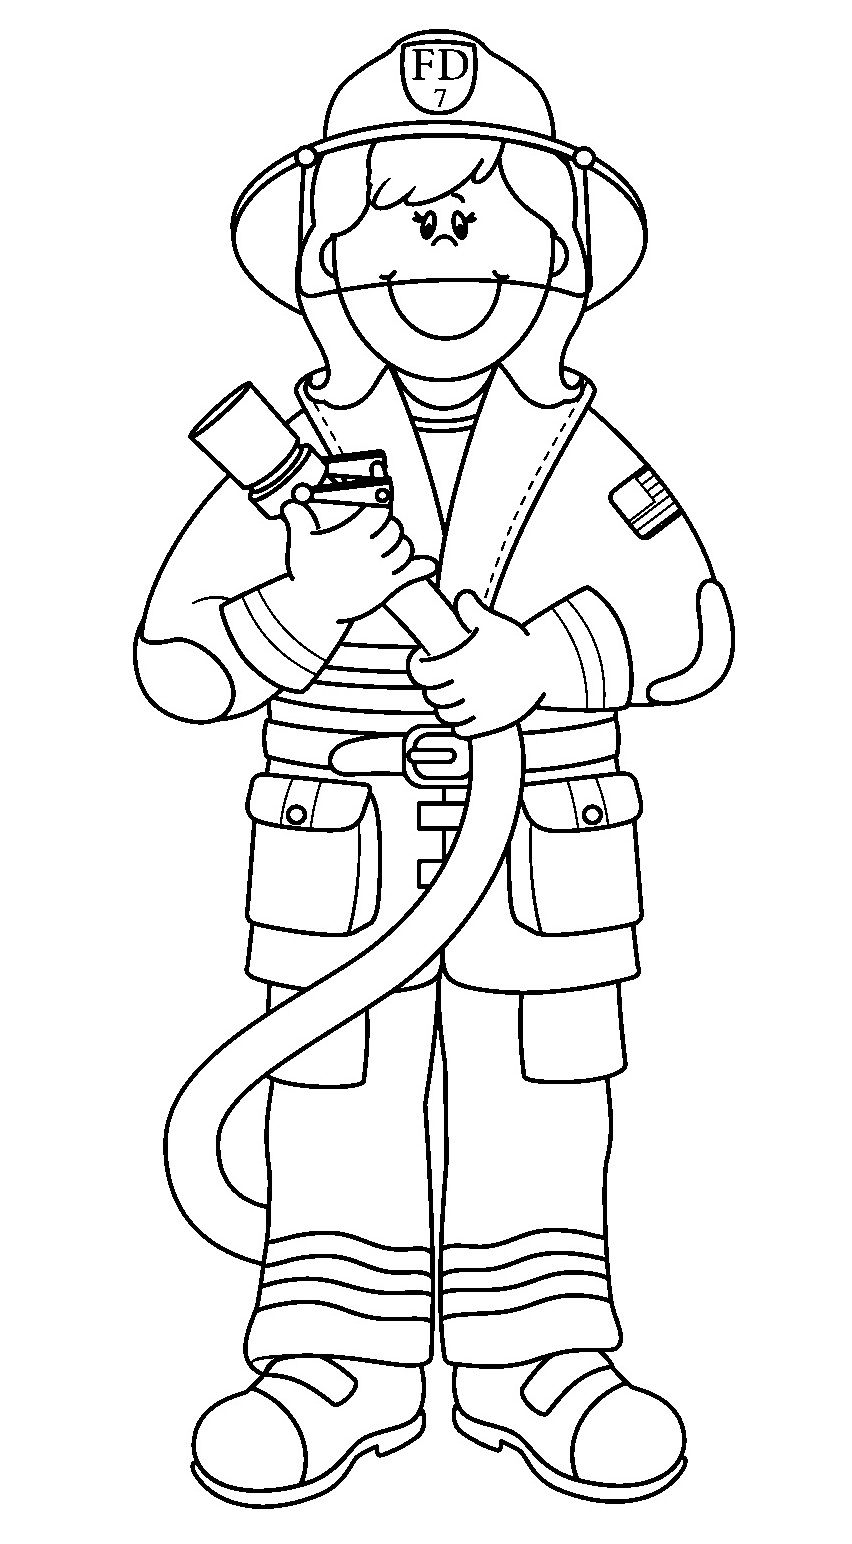 Printable Fireman Coloring Pages.